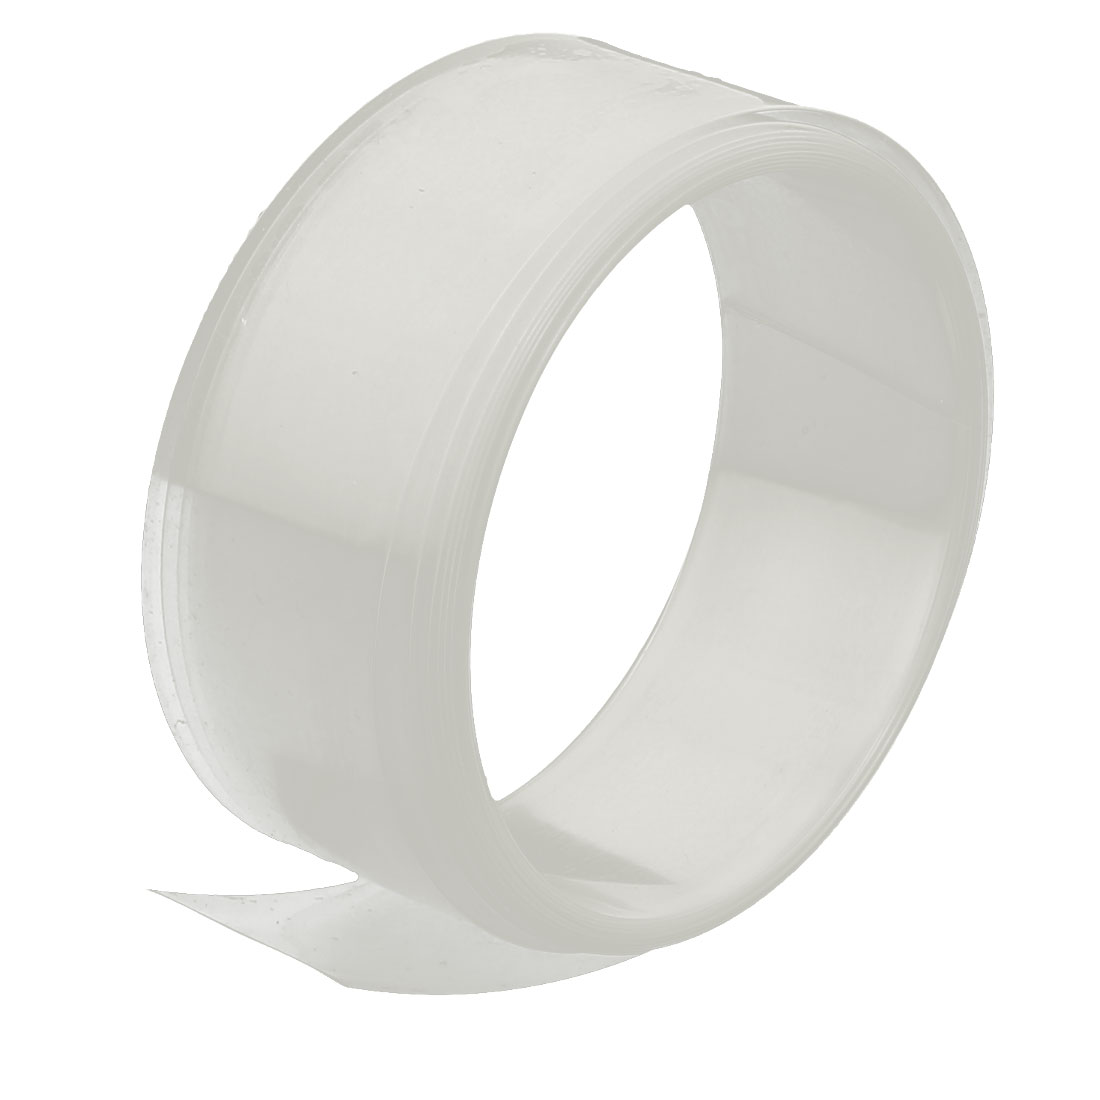 23mm Flat Width 2M Length PVC Heat Shrinkable Tube Clear for AA Battery